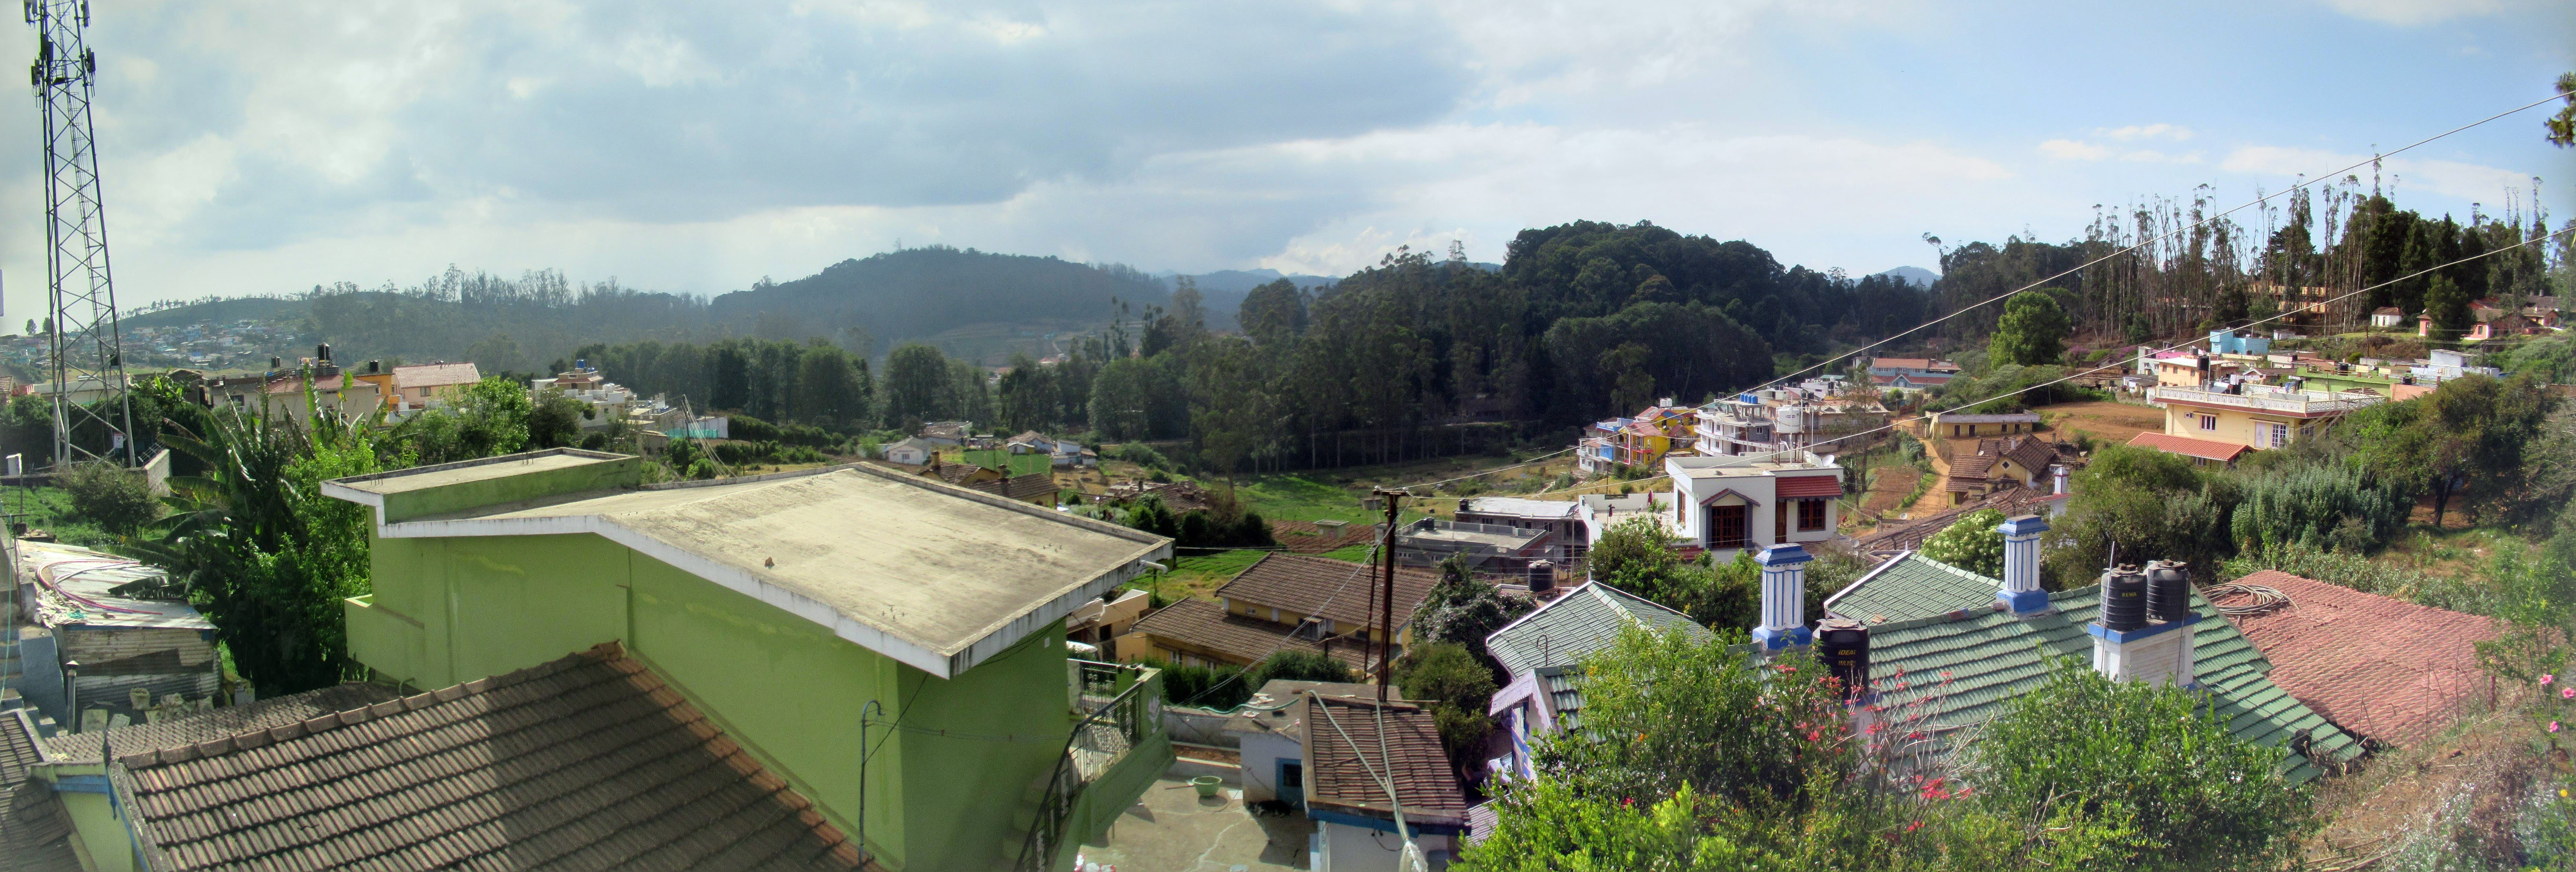 The rooftops of Ooty